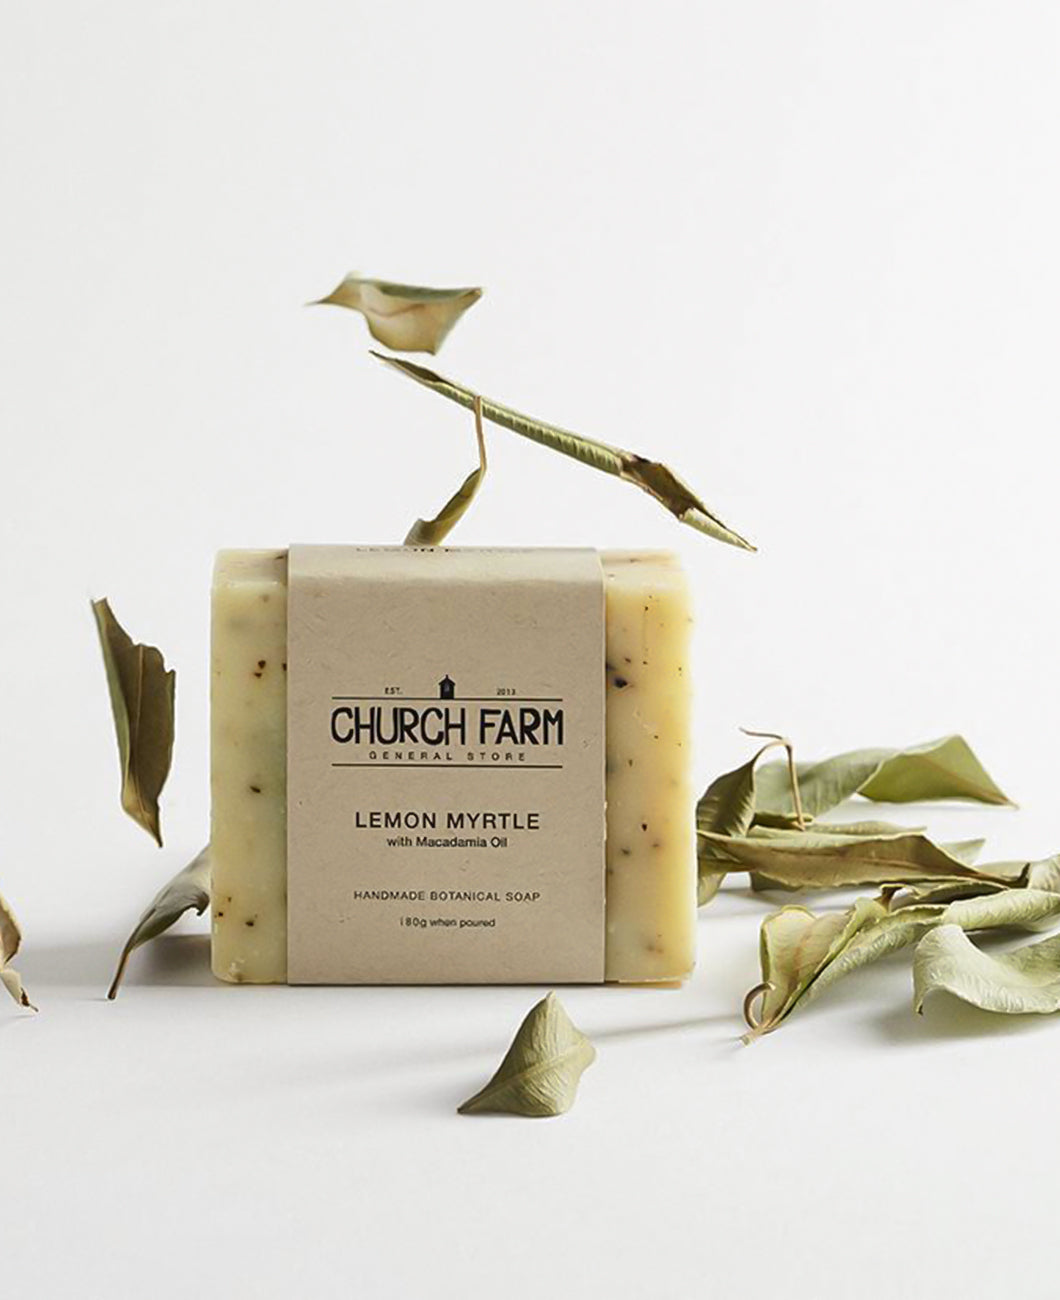 Church Farm Lemon Myrtle with Macadamia Oil